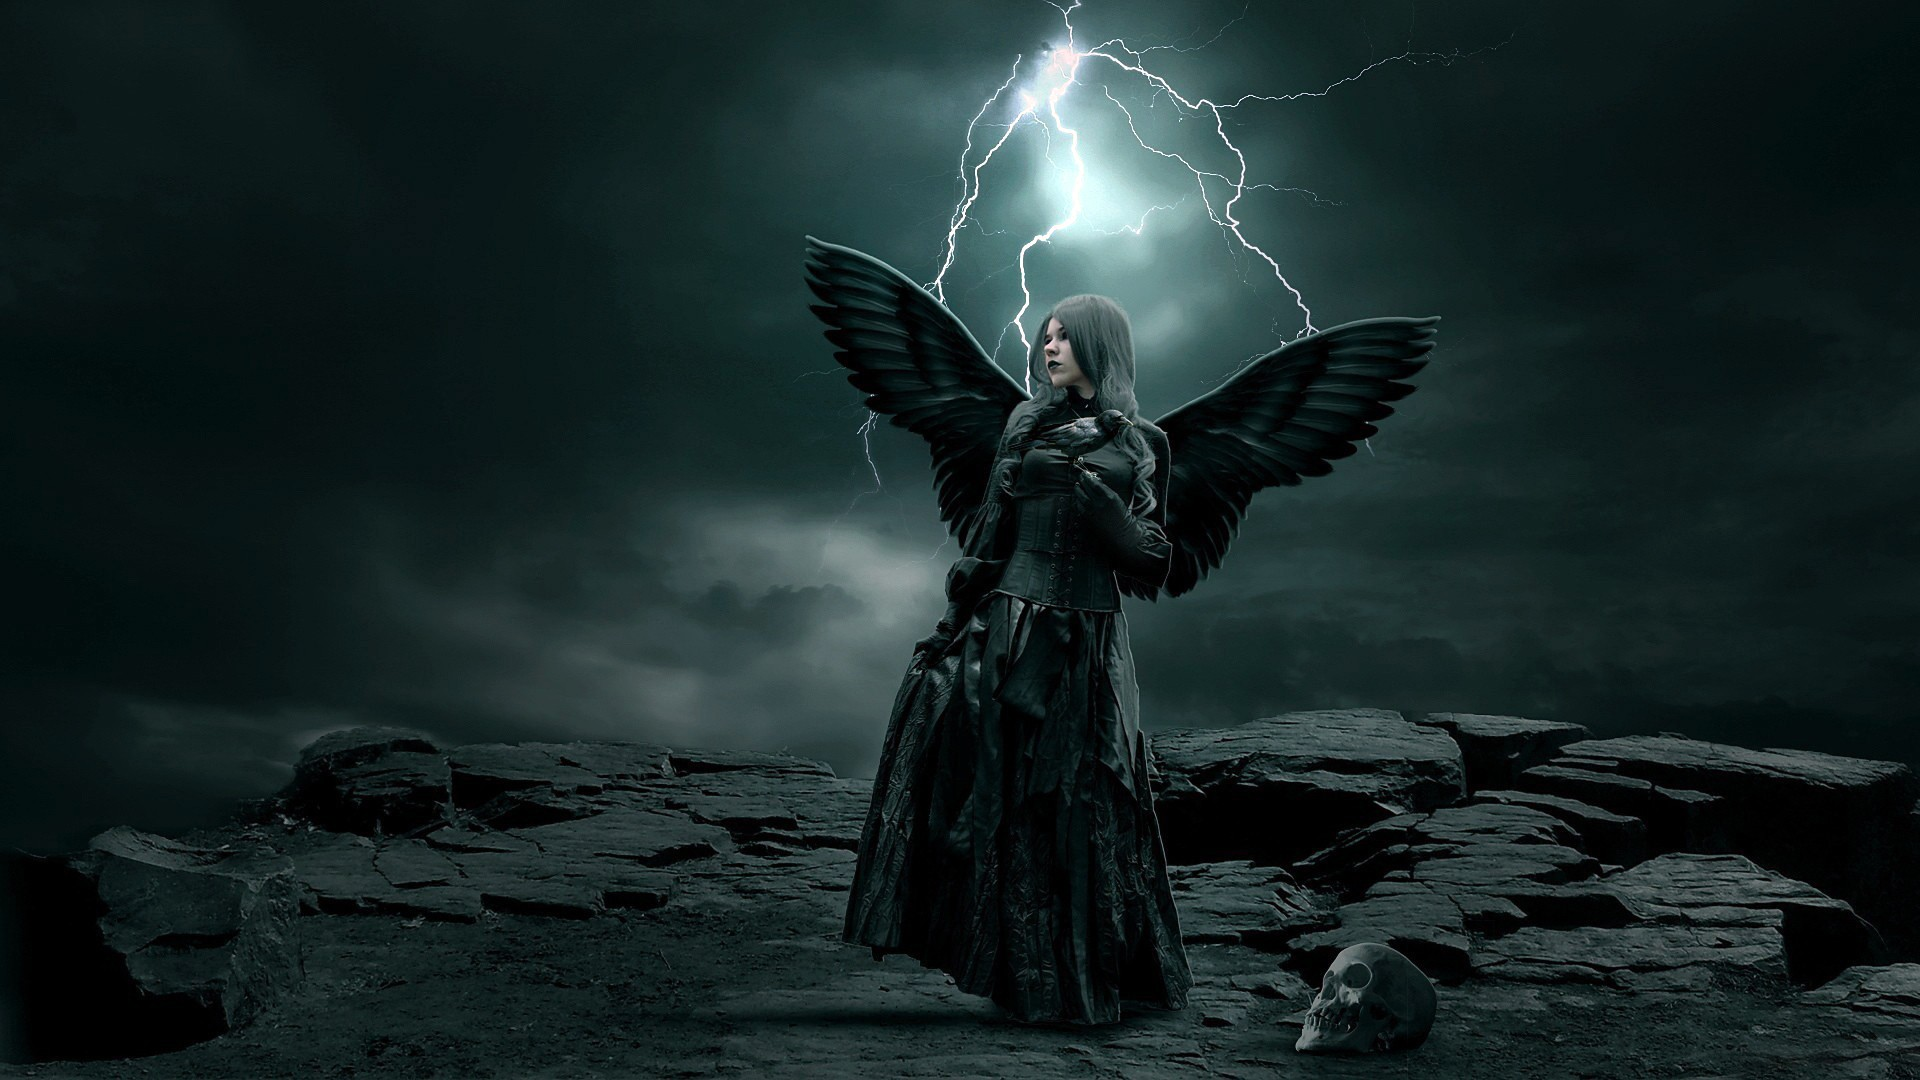 Rocks Angel Gothic Dark Storm WingsHD Abstract Wallpapers 1920x1080